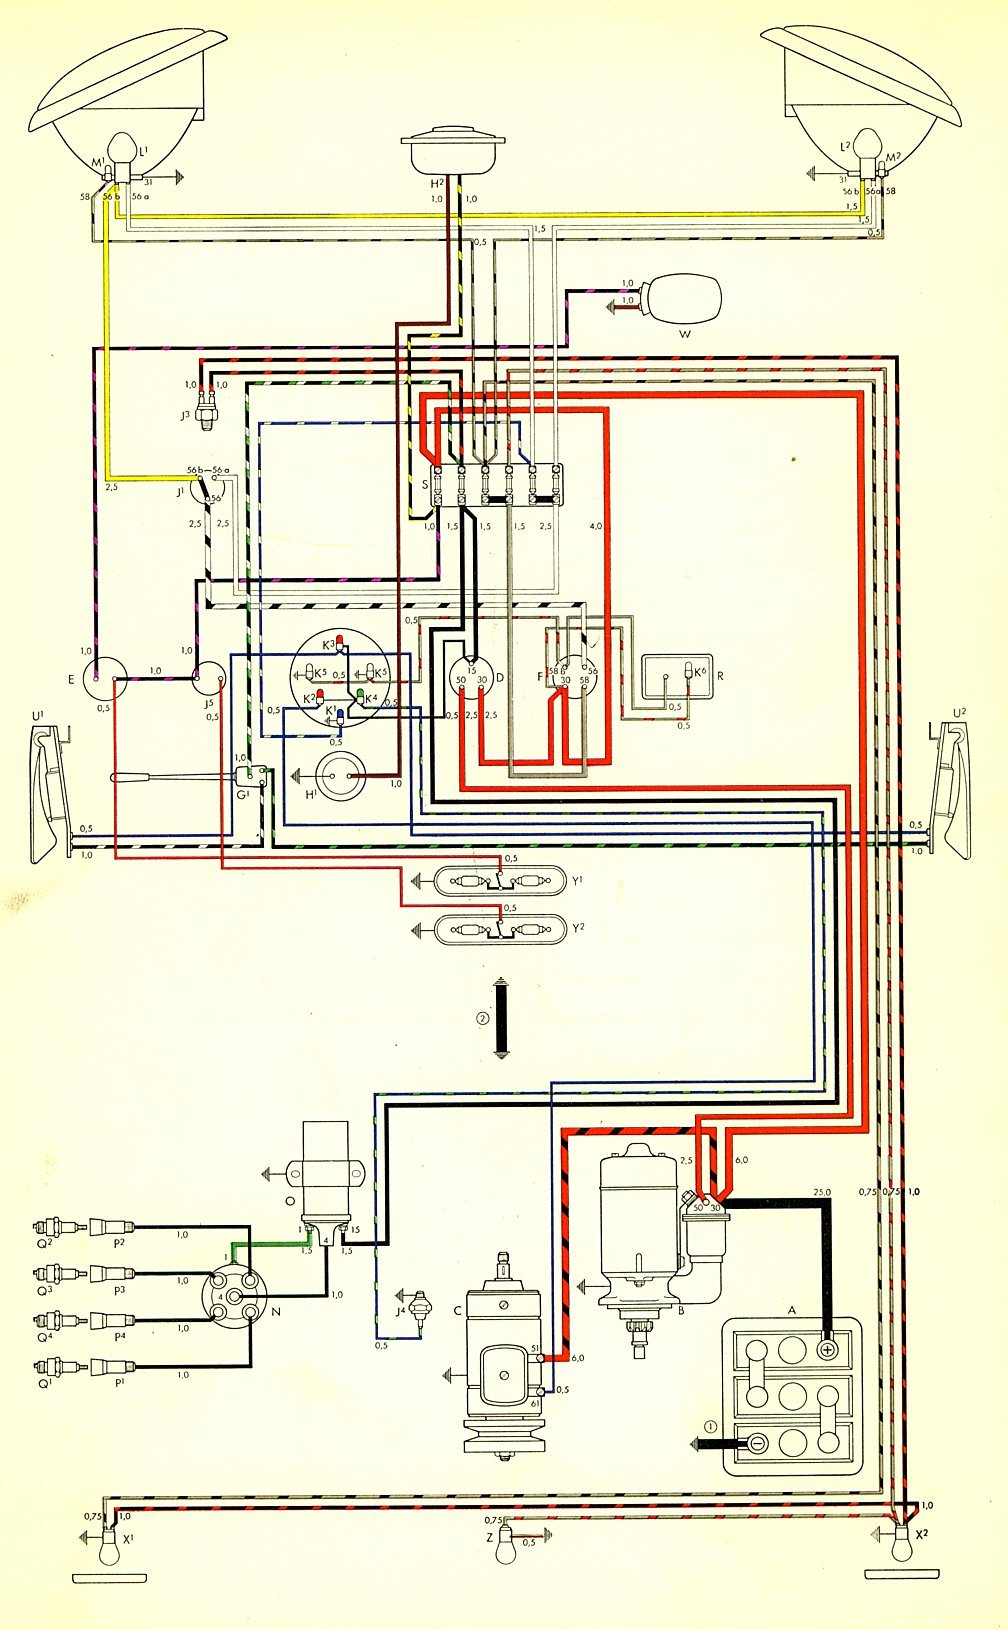 bus_59 bus wiring diagram vw wiring harness diagram \u2022 wiring diagrams j 1965 vw bus wiring harness at cos-gaming.co